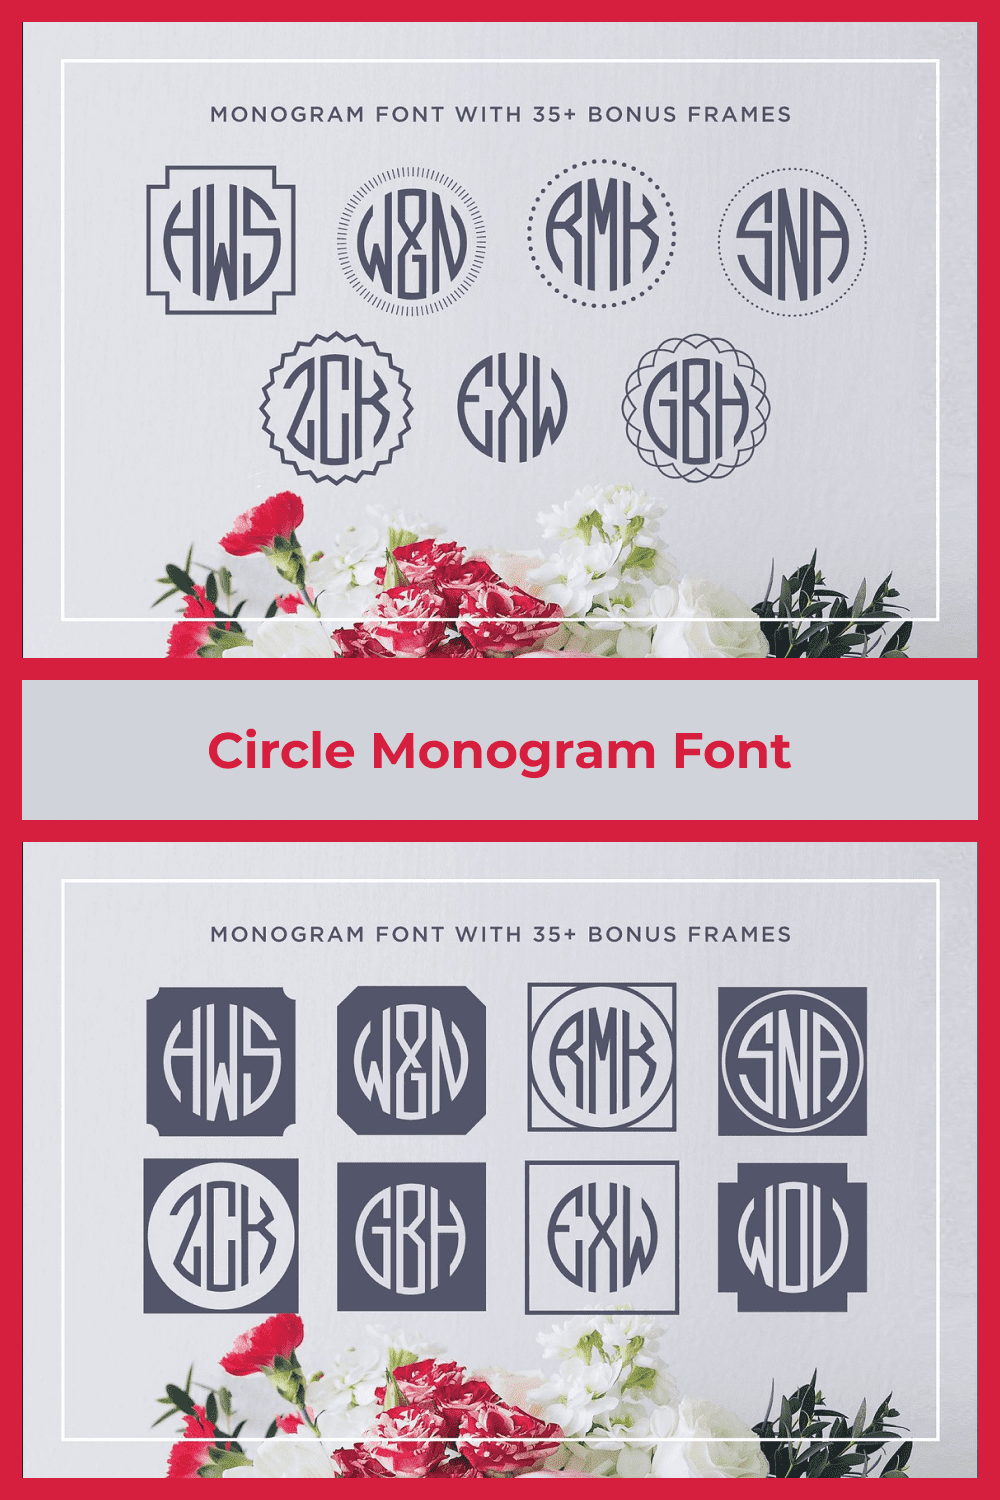 Make gorgeous three letter circle monograms quickly and easily in any program, even Word or Pages.